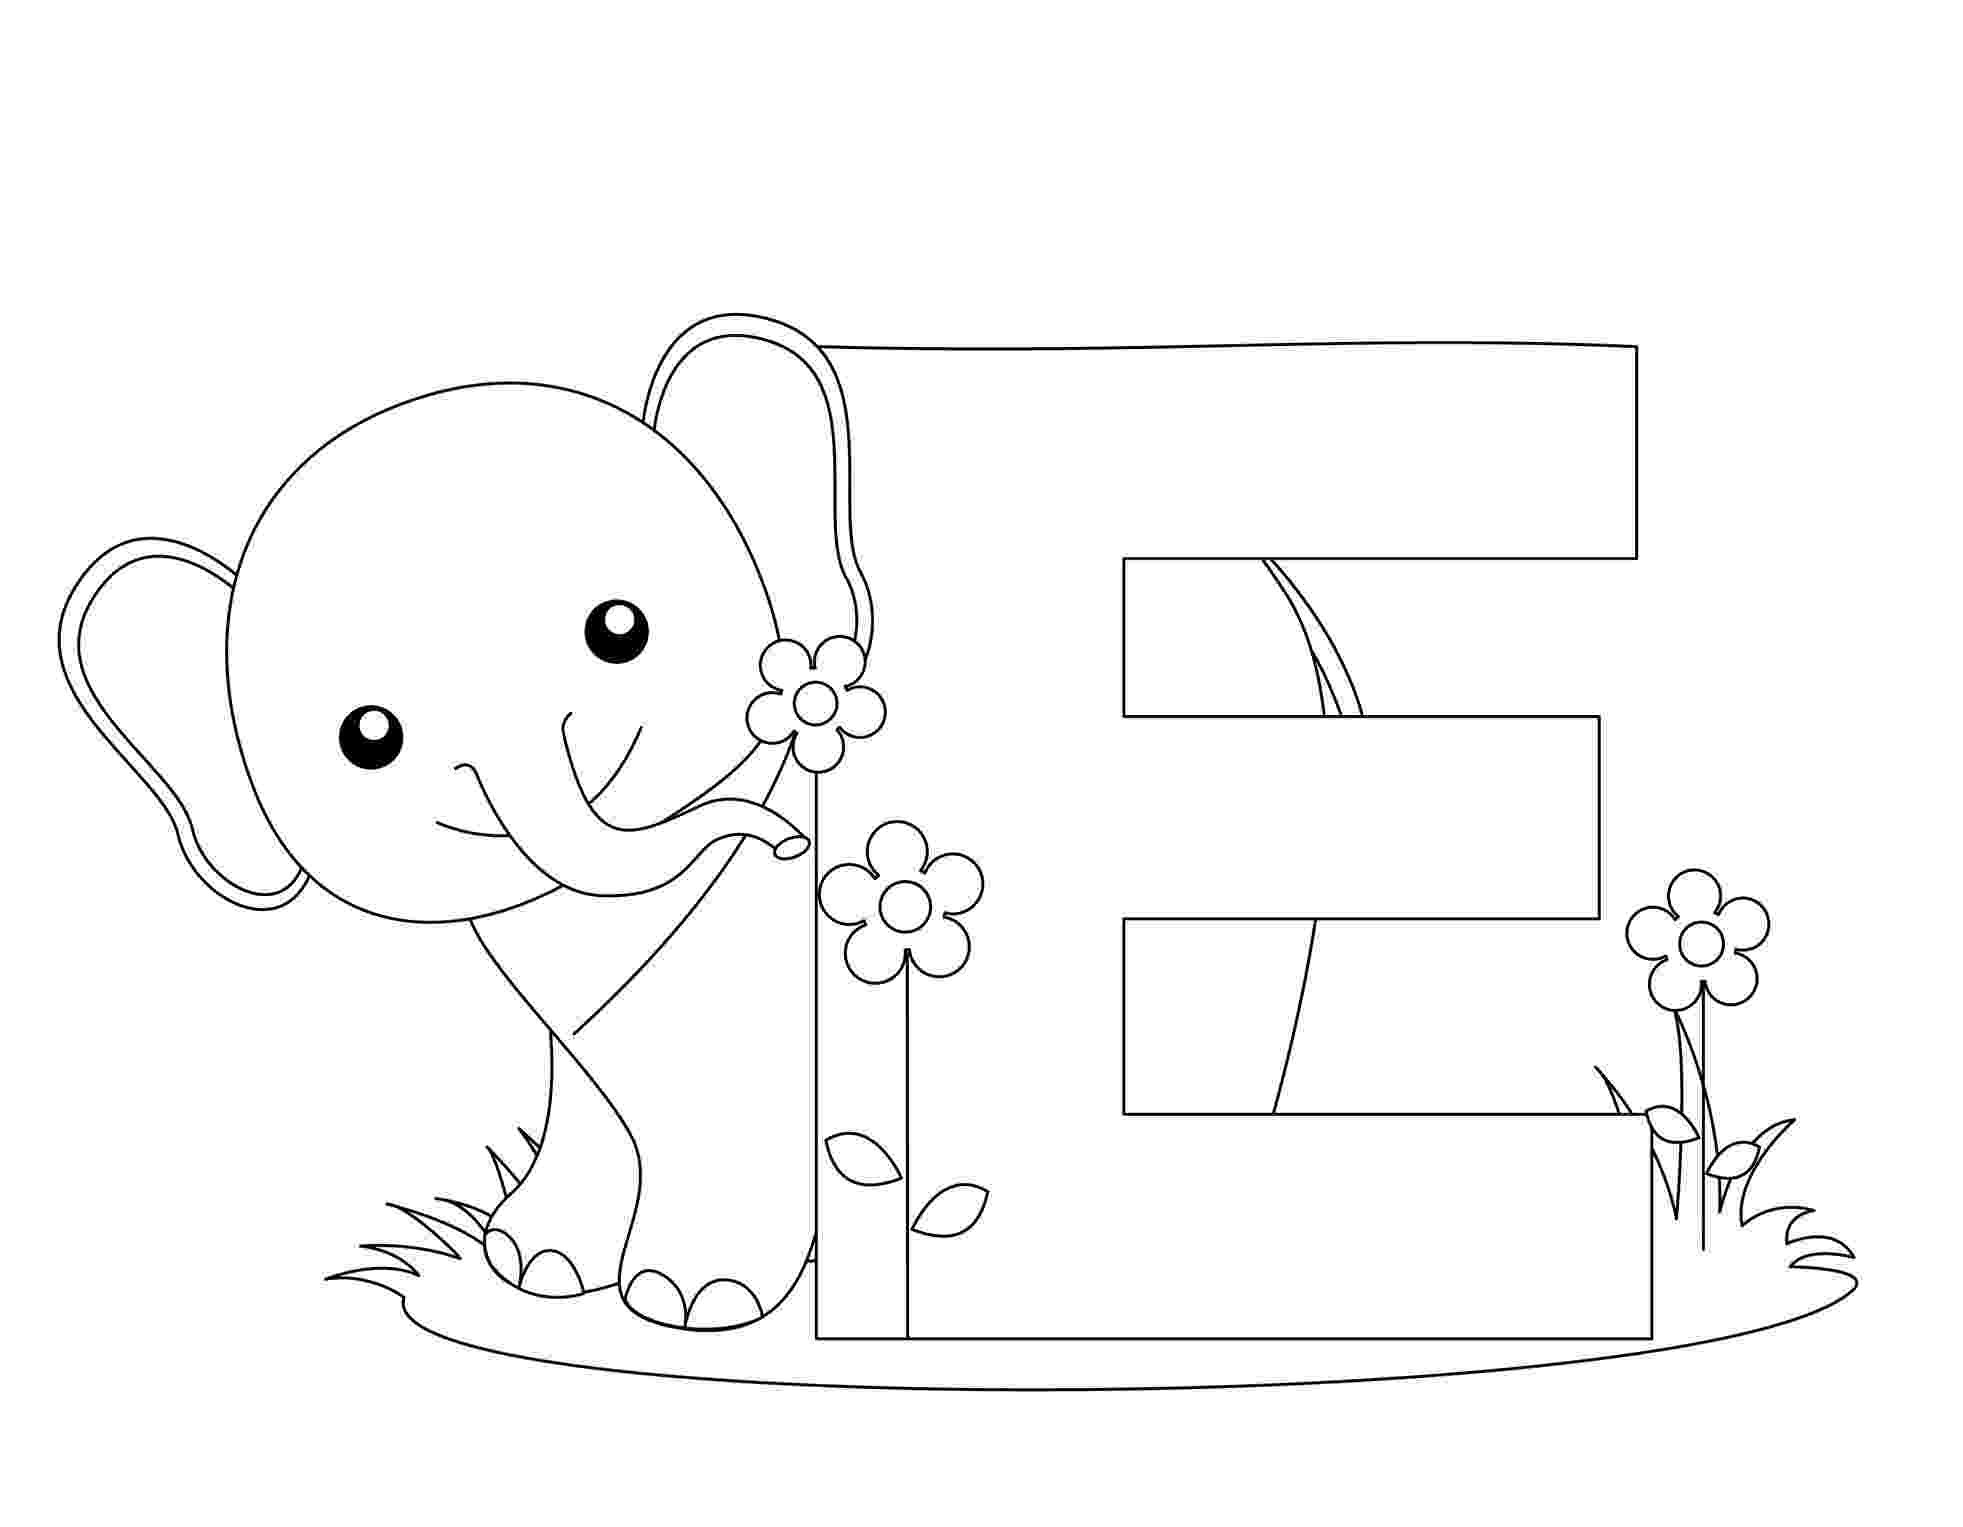 letter e coloring pages for toddlers letter e is for elmo coloring page free printable pages coloring letter e for toddlers